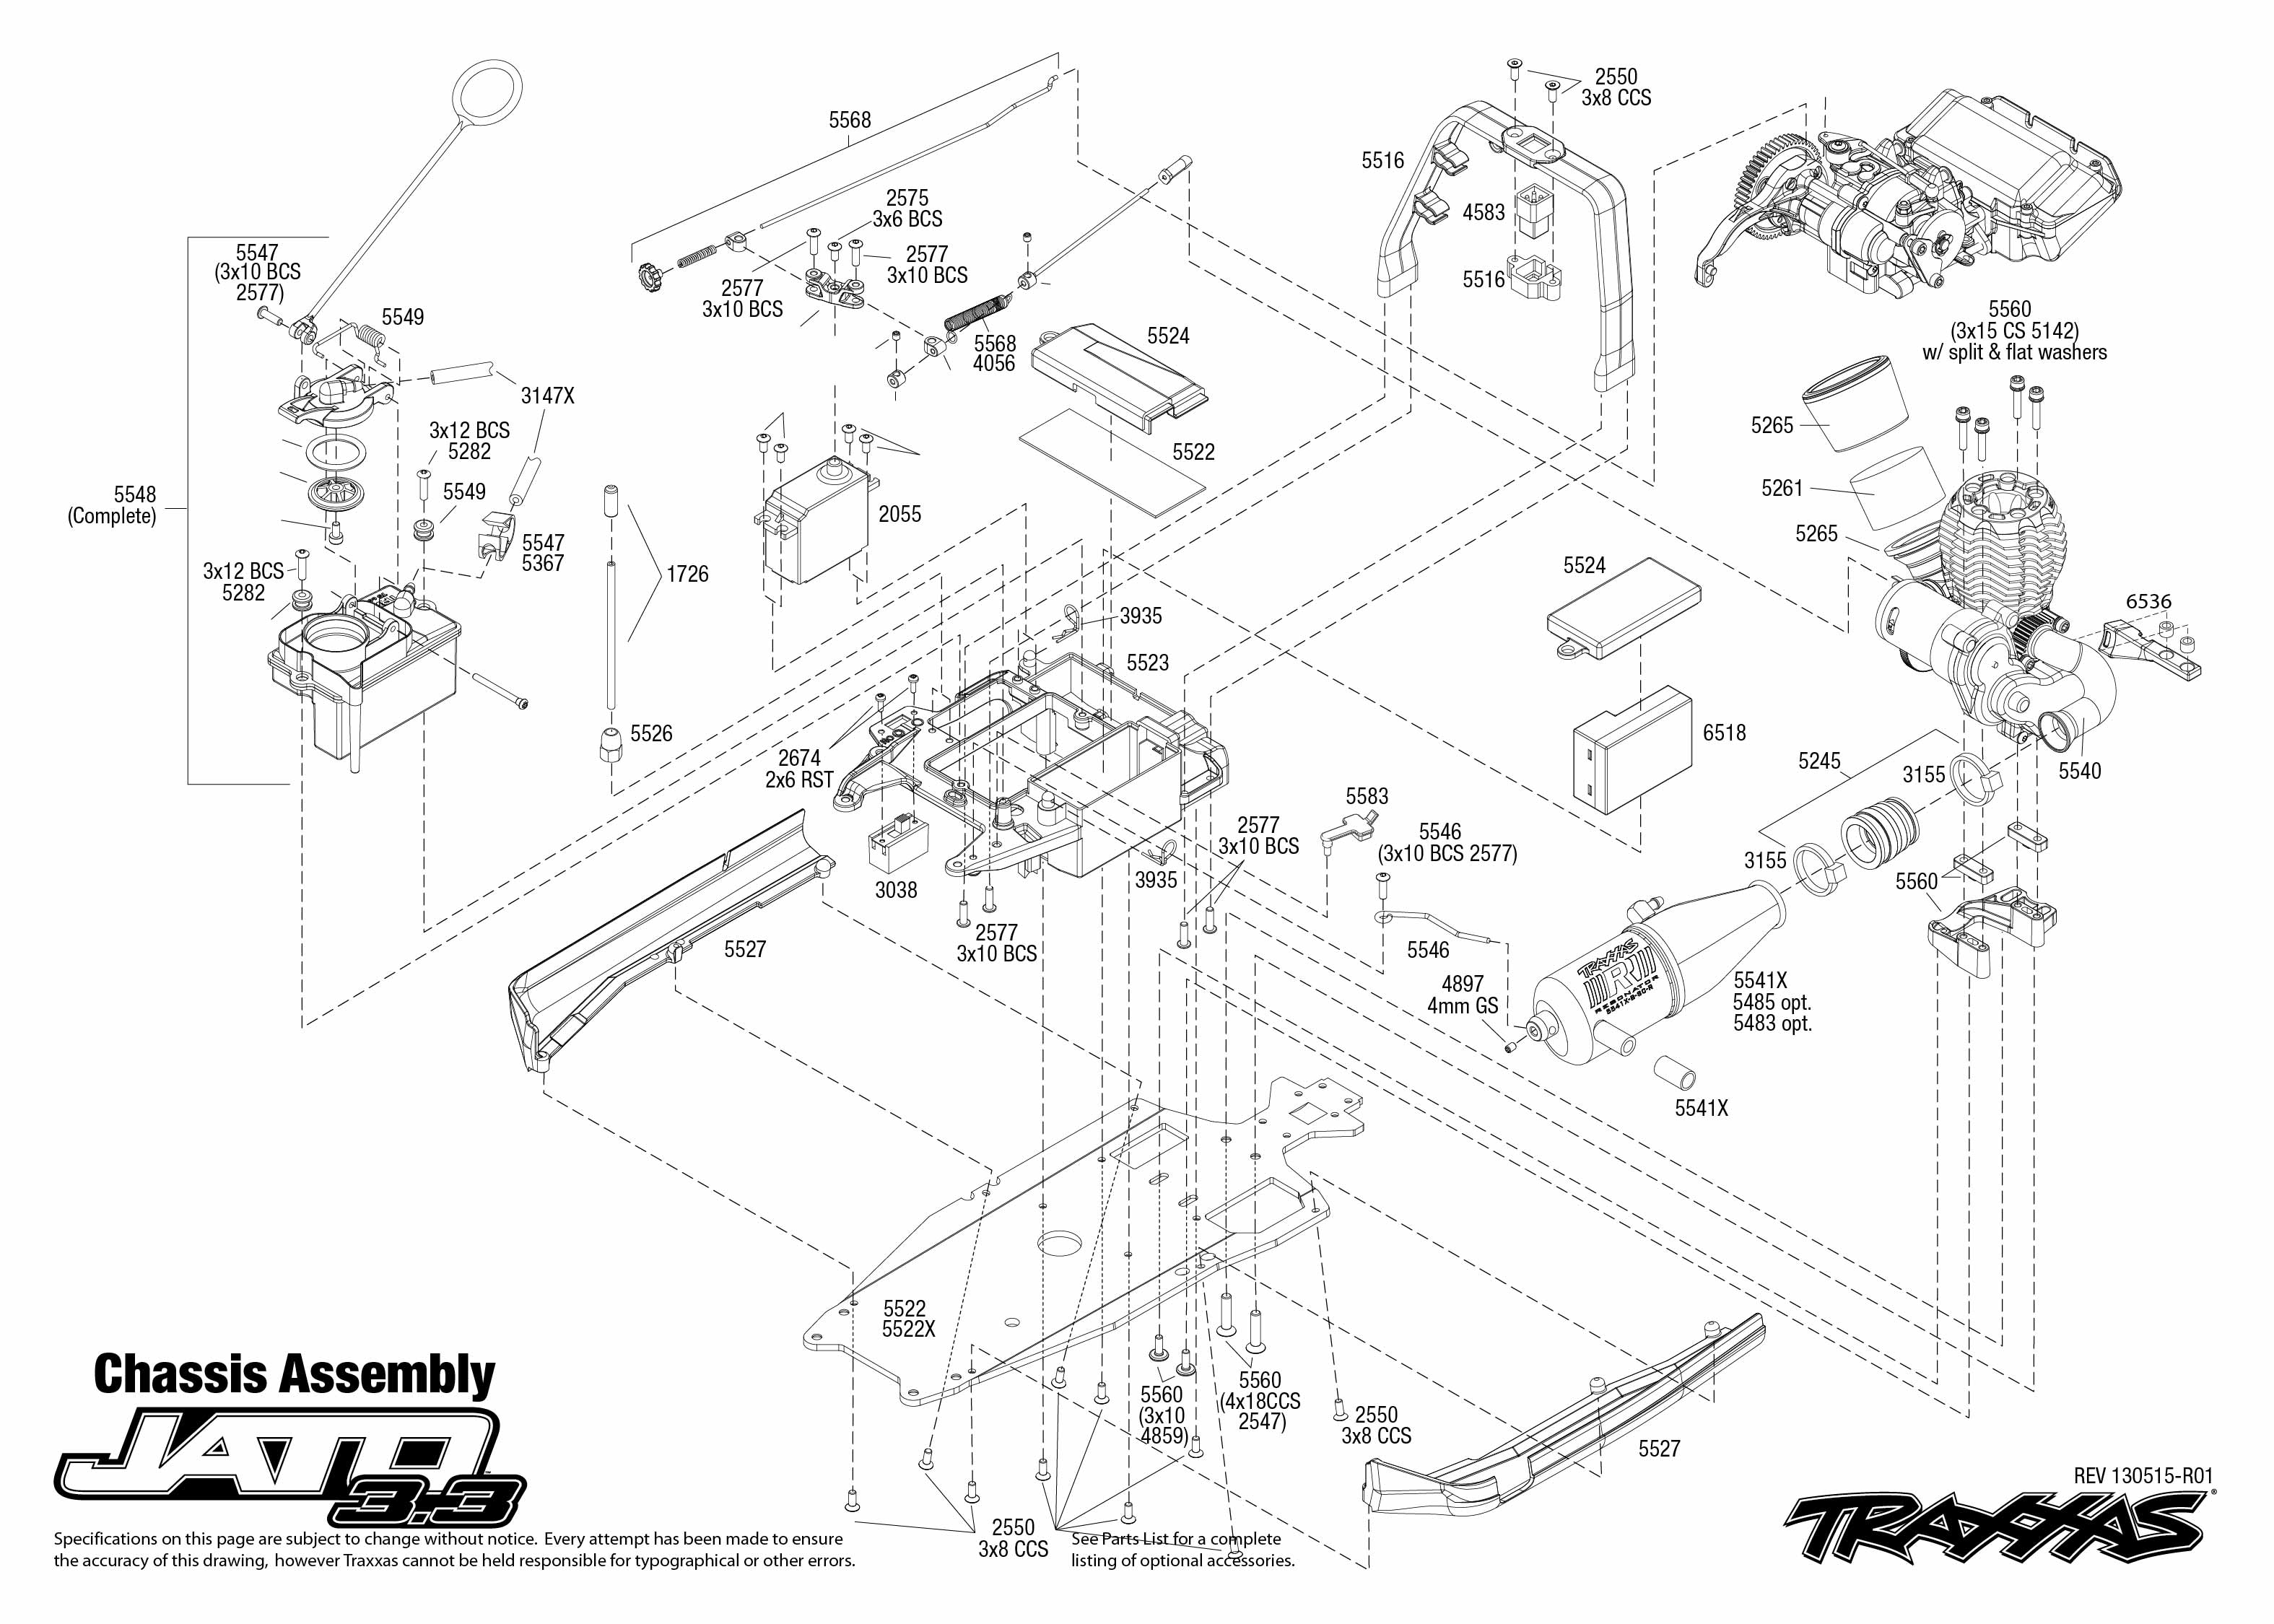 traxxas 1/10 scale 2wd jato 3.3 stadium truck - 5507 mazda b3000 3 litre engine diagram